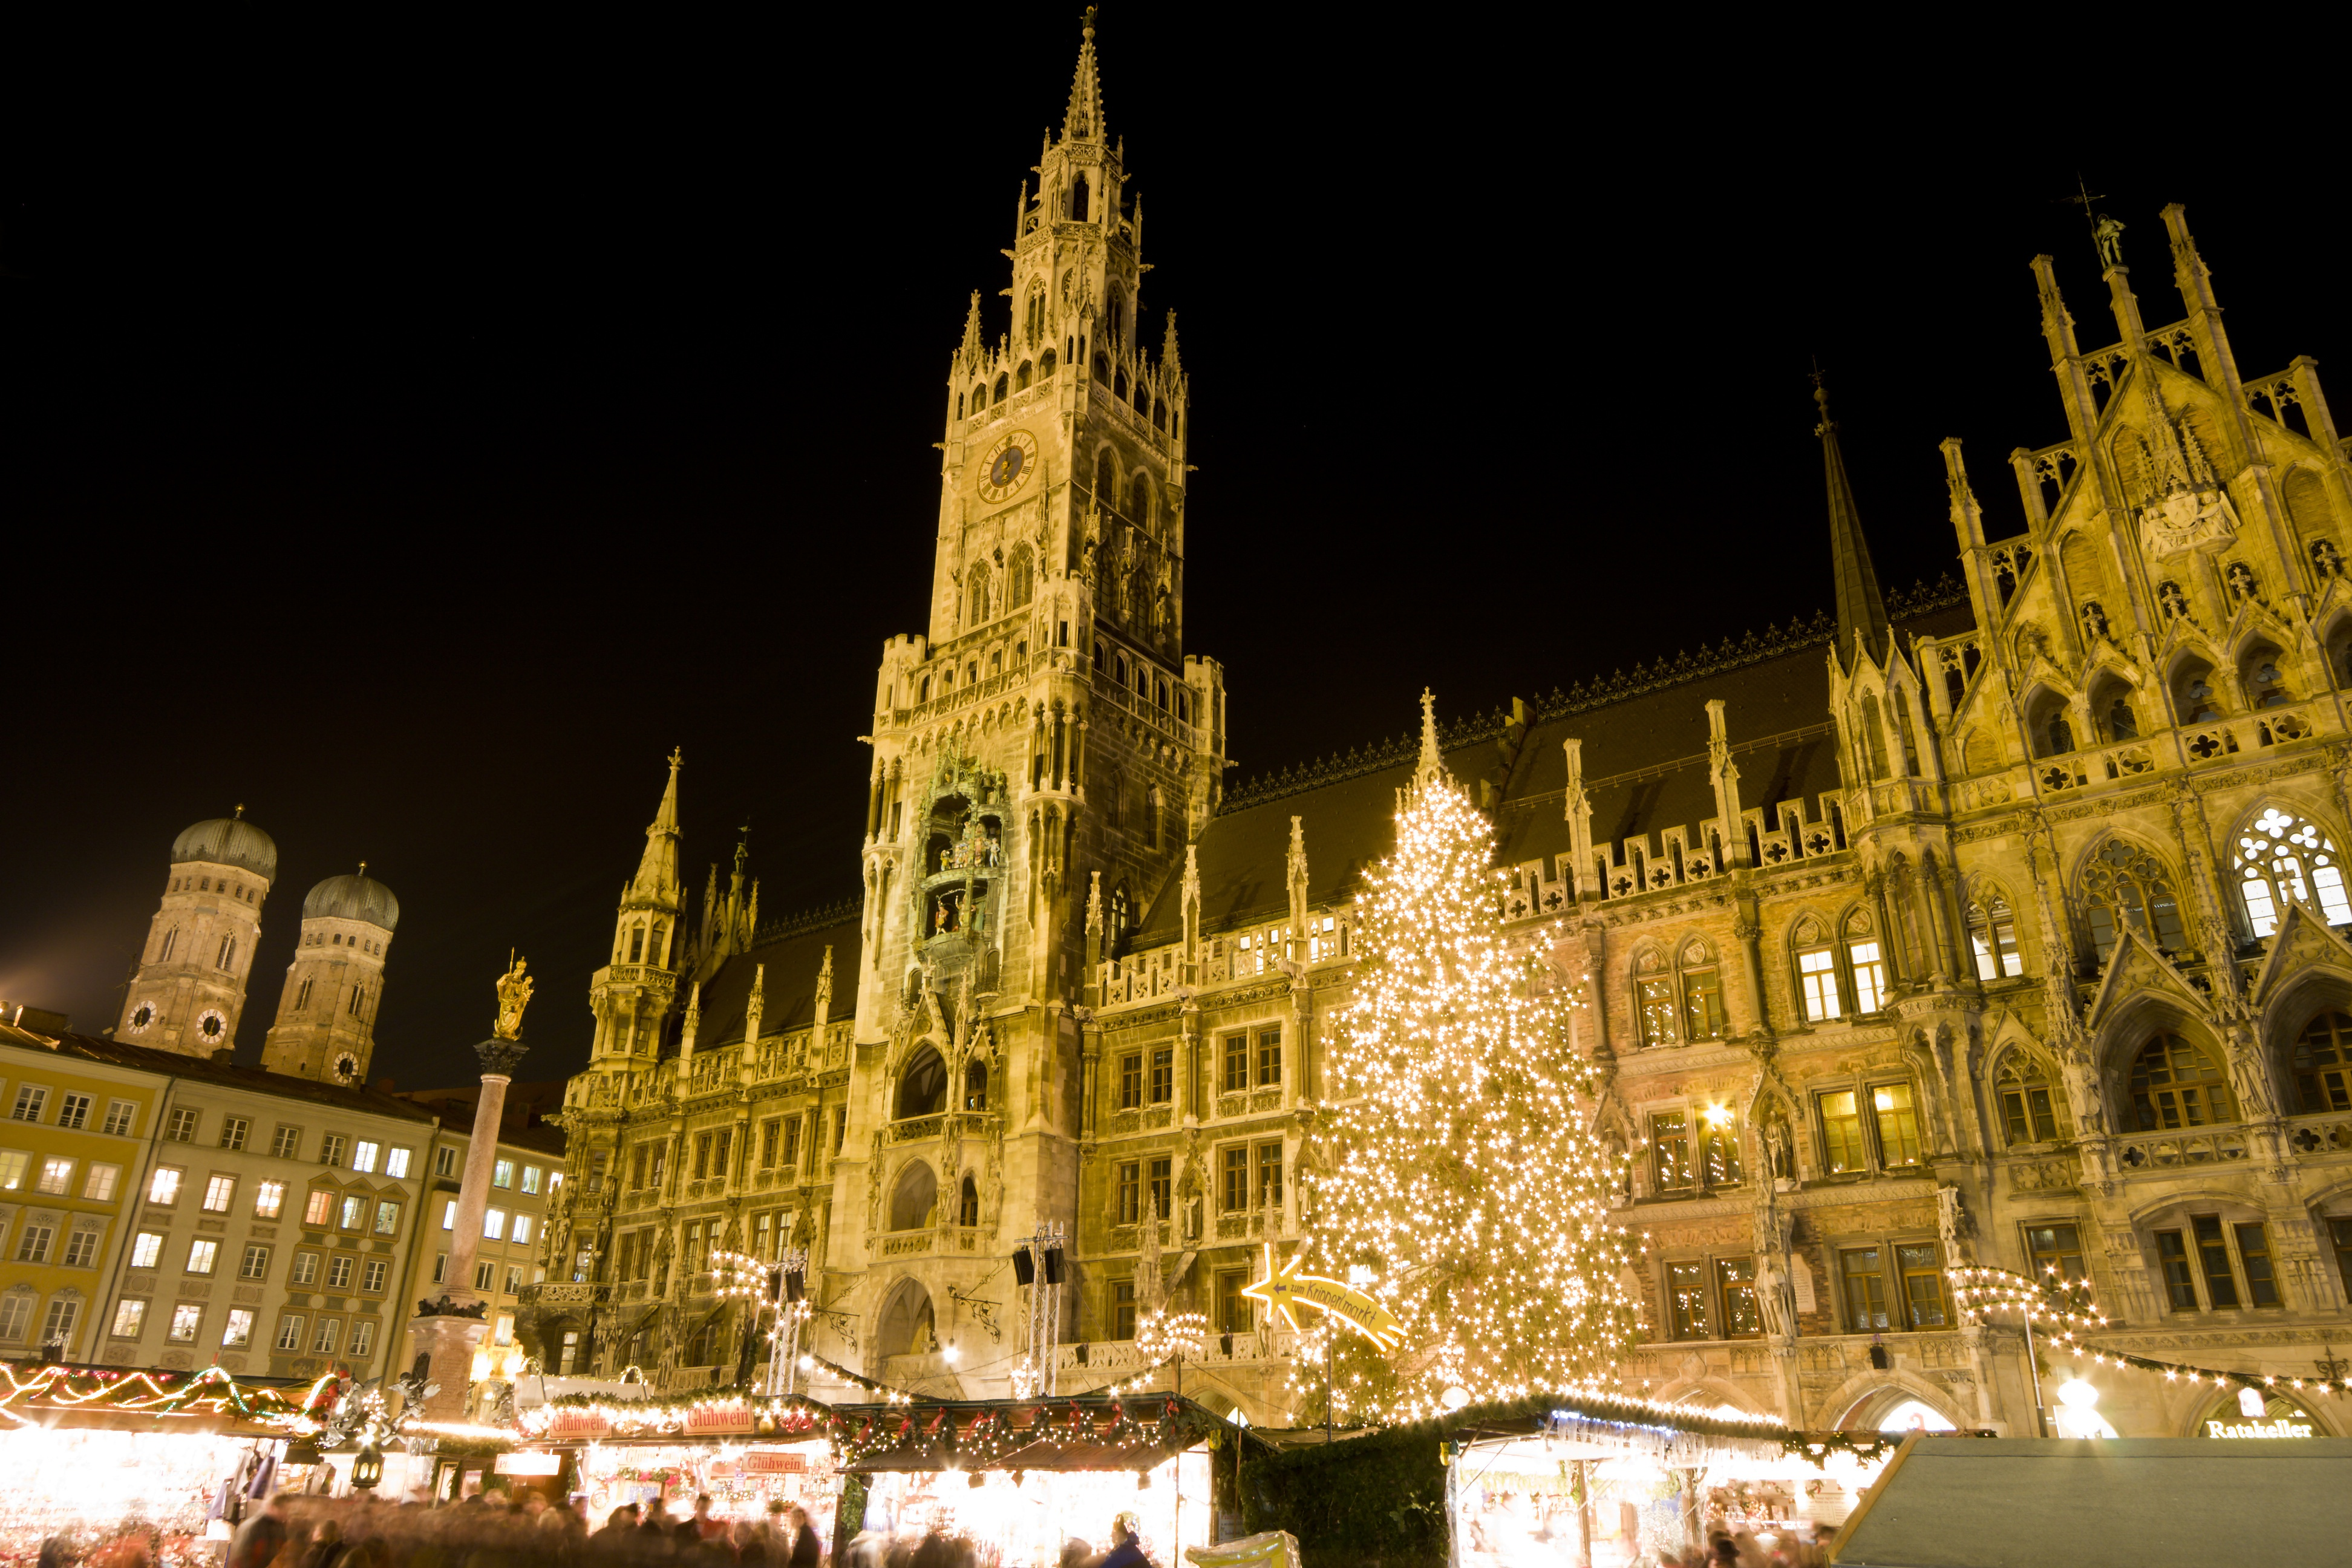 Image of a Christmas market in Munich